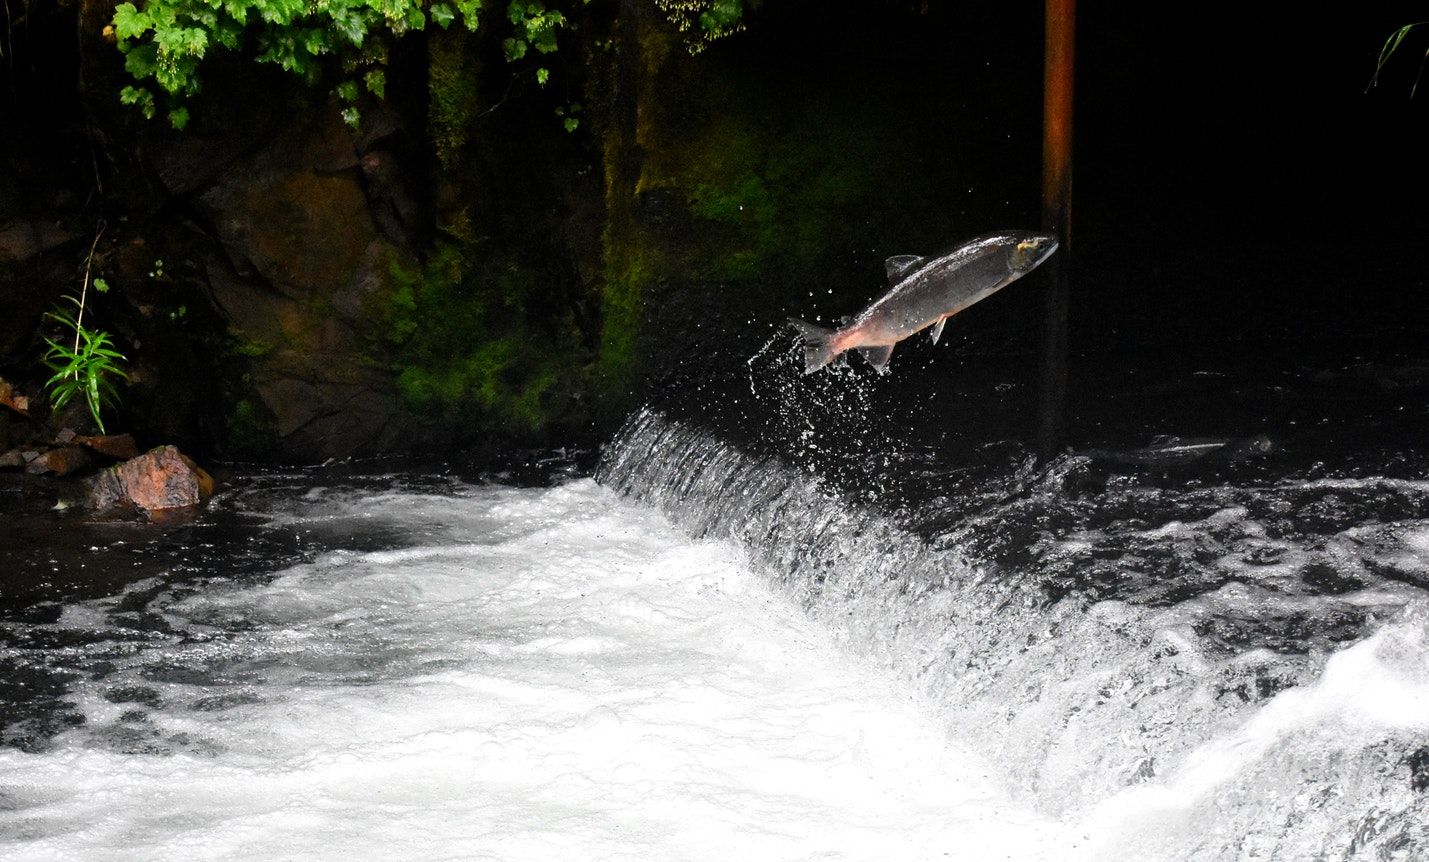 A salmon jumping a waterfall in Scotland